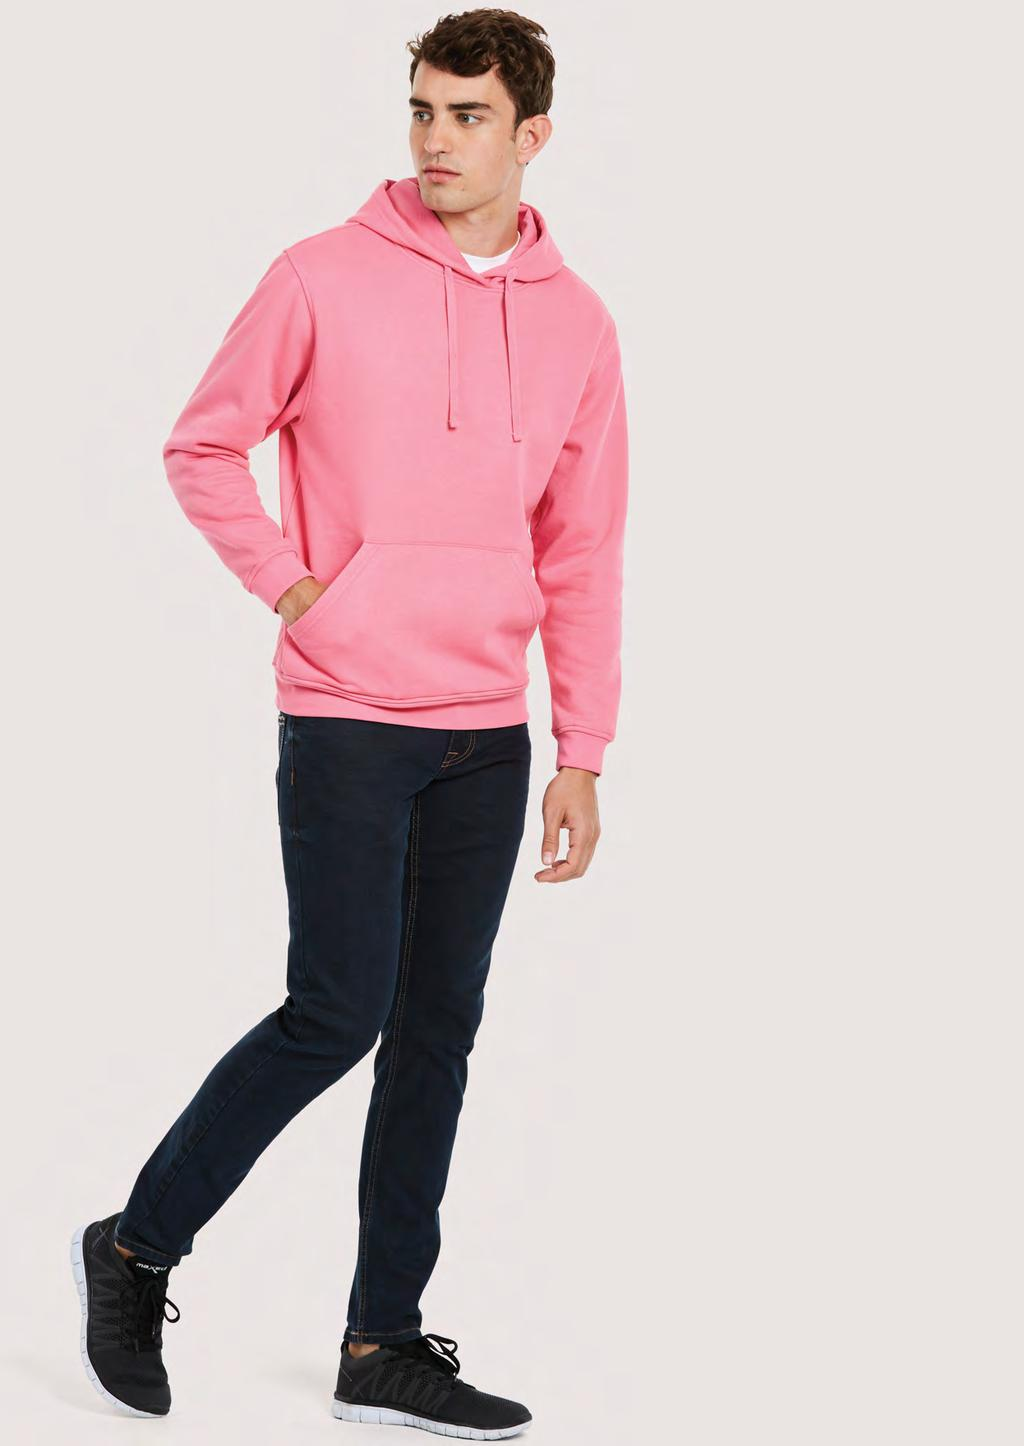 SWEATSHIRTS UC509 UNISEX DELUXE HOODED SWEATSHIRT 280 60 20/10 60% Pre Shrunk Ring Spun Combed Cotton 40% Polyester Super Soft Luxurious Feel Fabric Reactive Dyed Lycra Ribbed Cuffs & Welt Twin